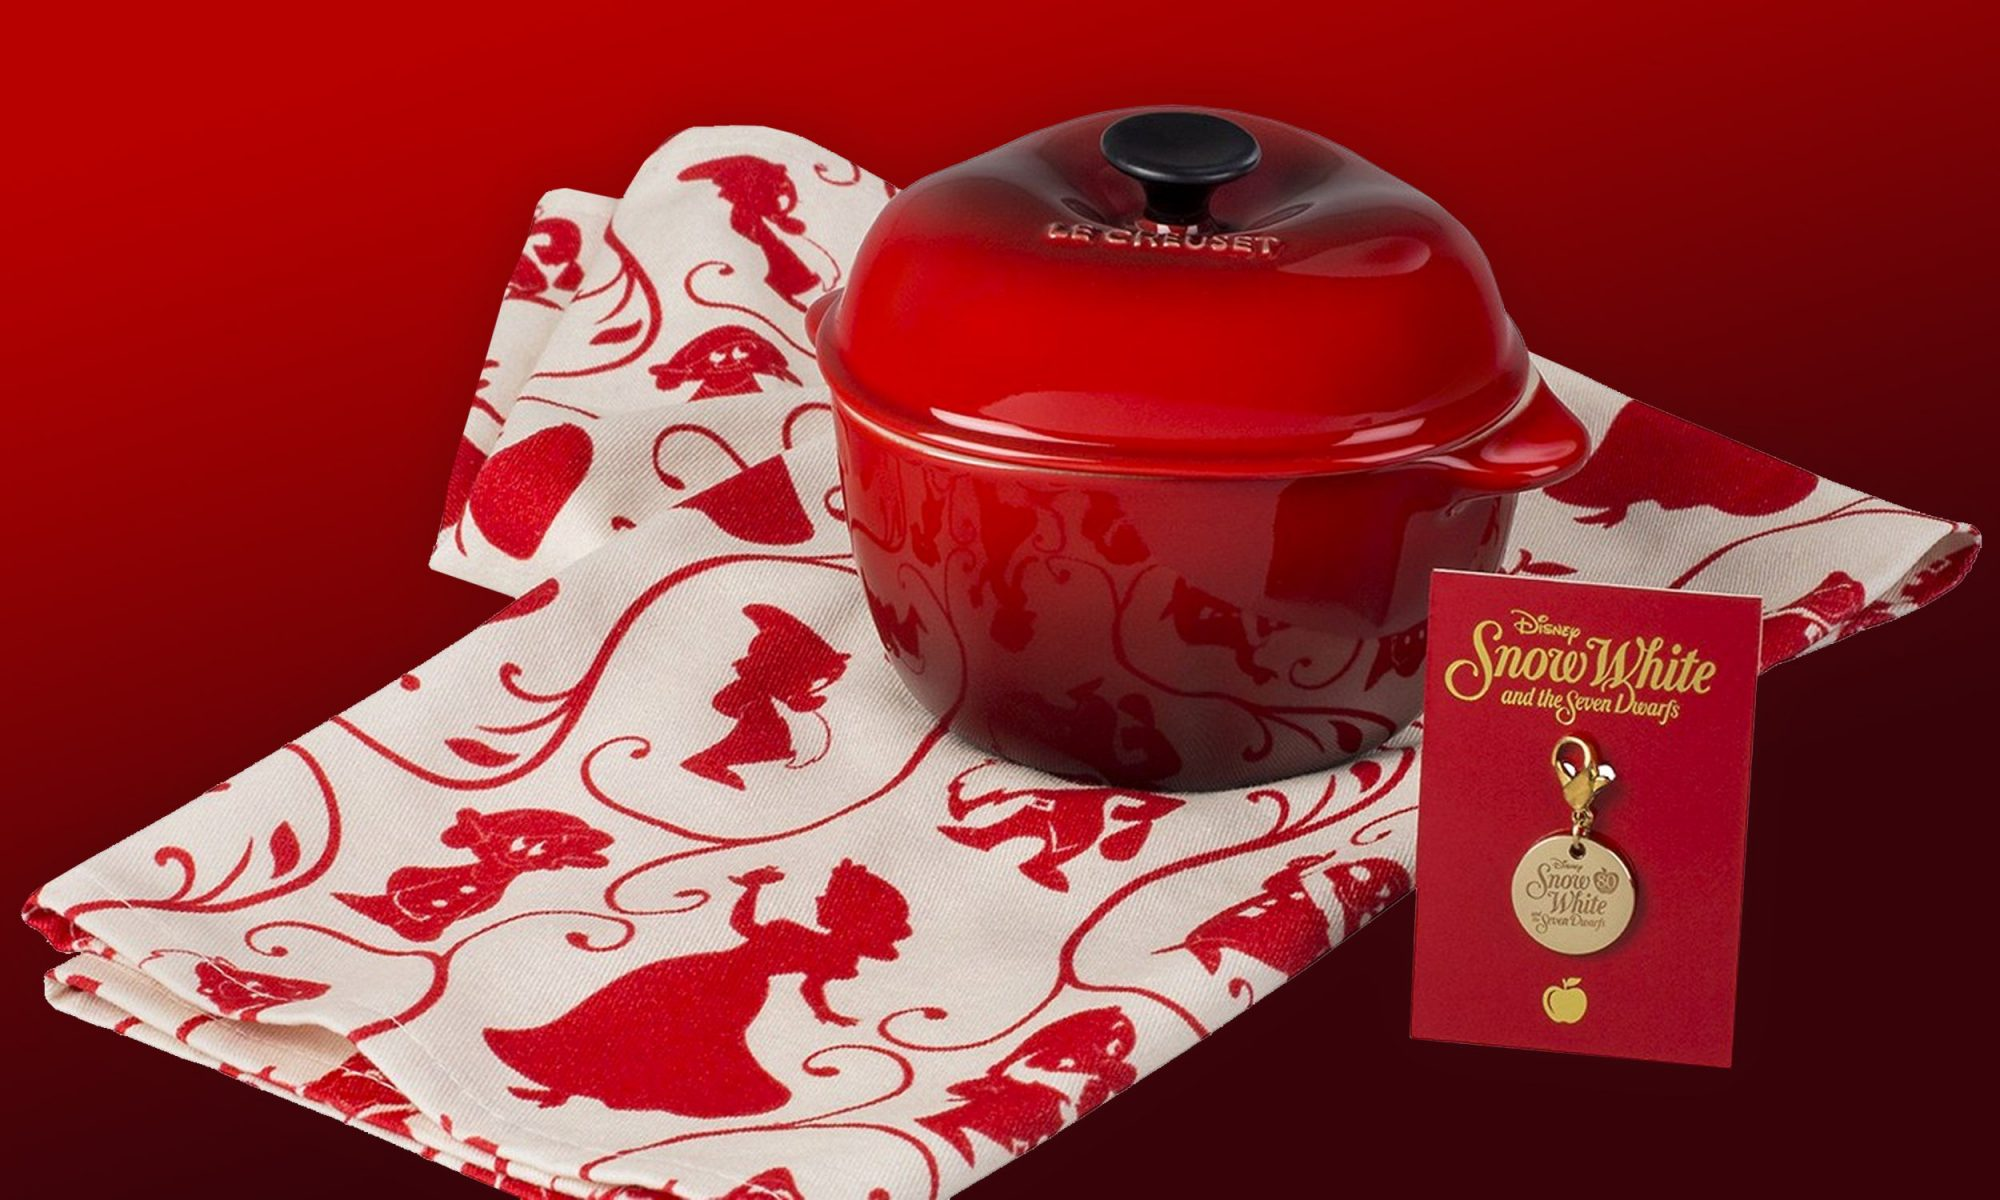 EC: Disney and Le Creuset Are Releasing Snow White-Inspired Cocottes